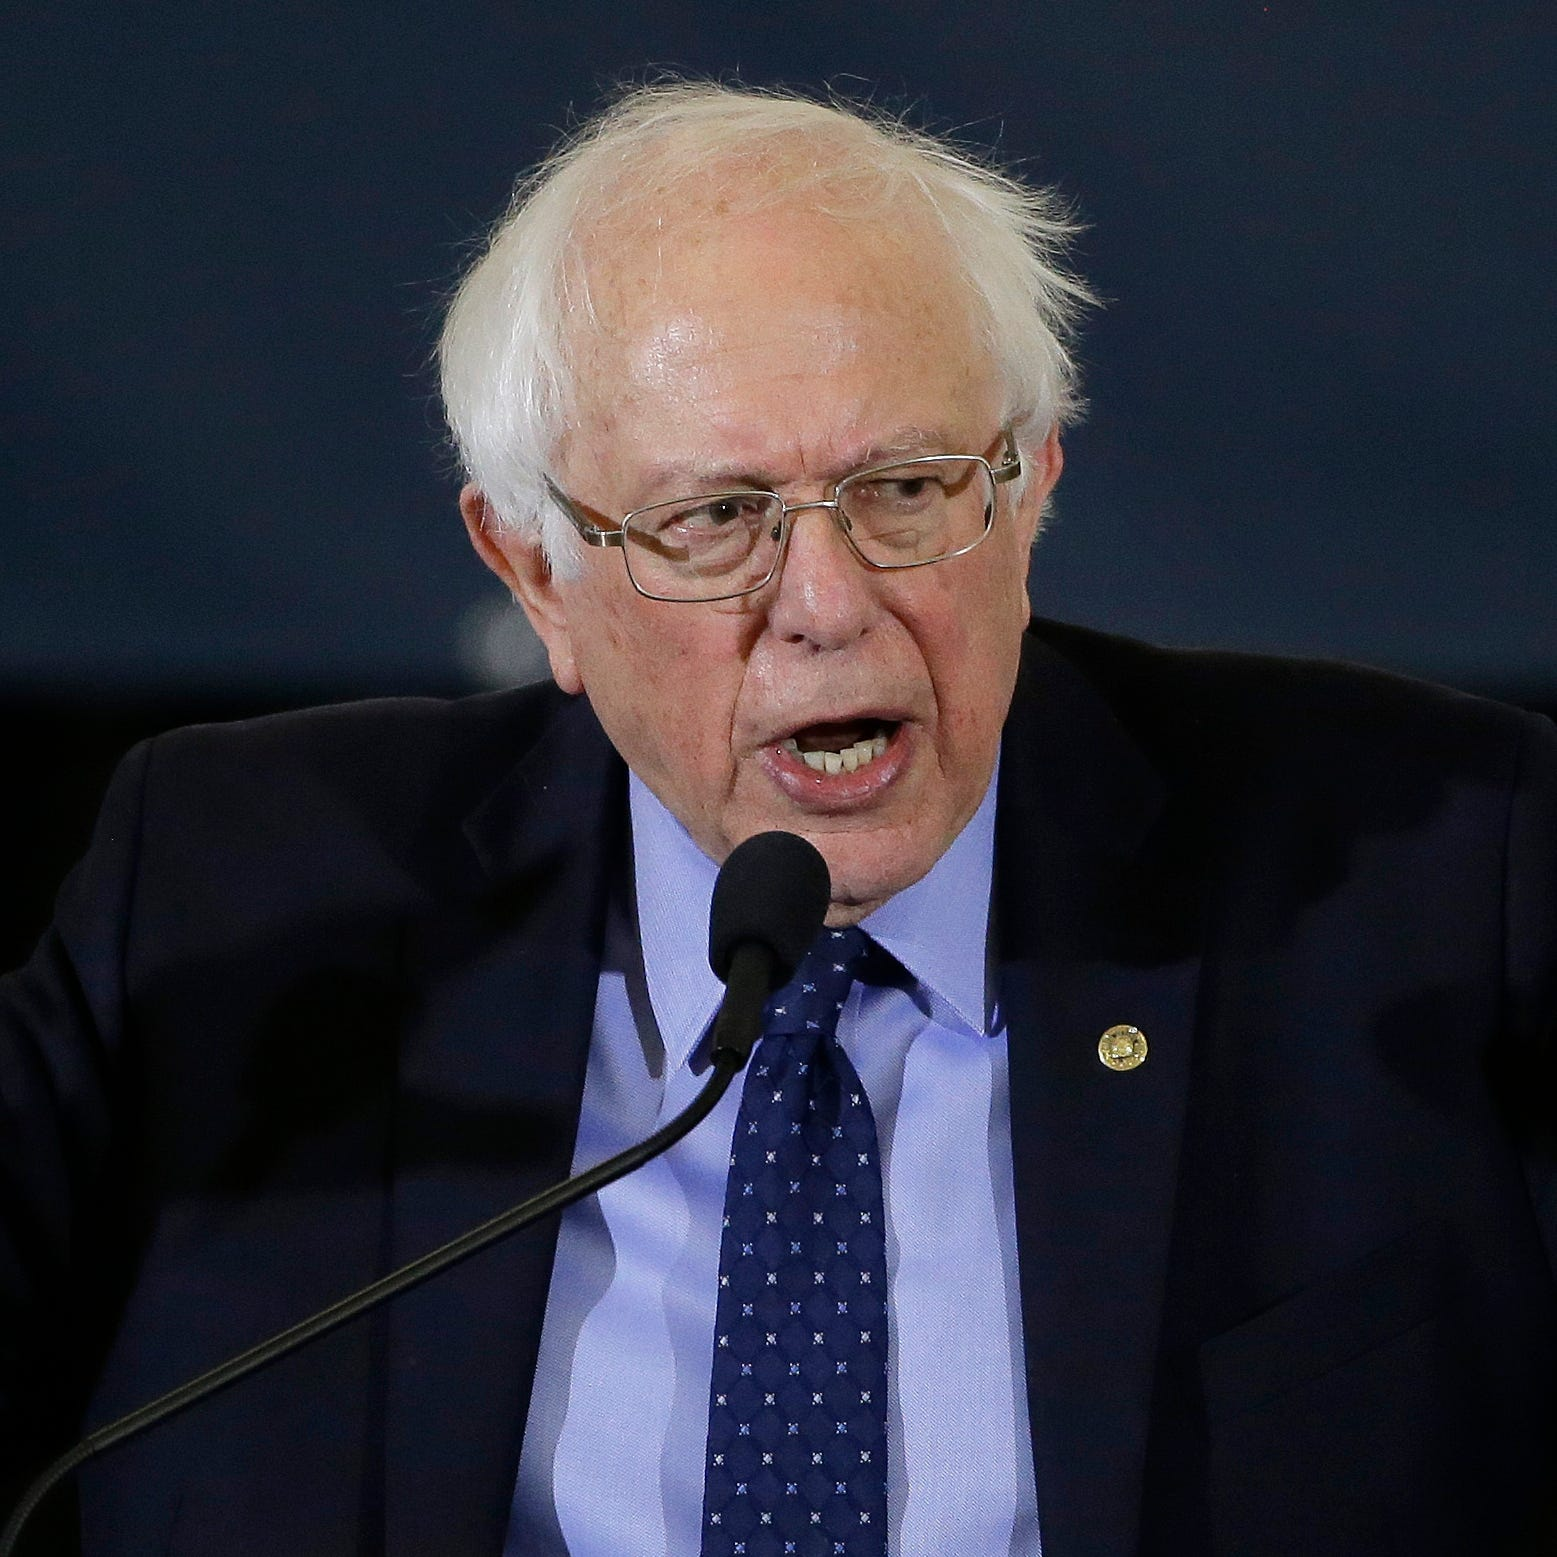 Donald Trump attacks Bernie Sanders' tax returns, makes 2020 election prediction